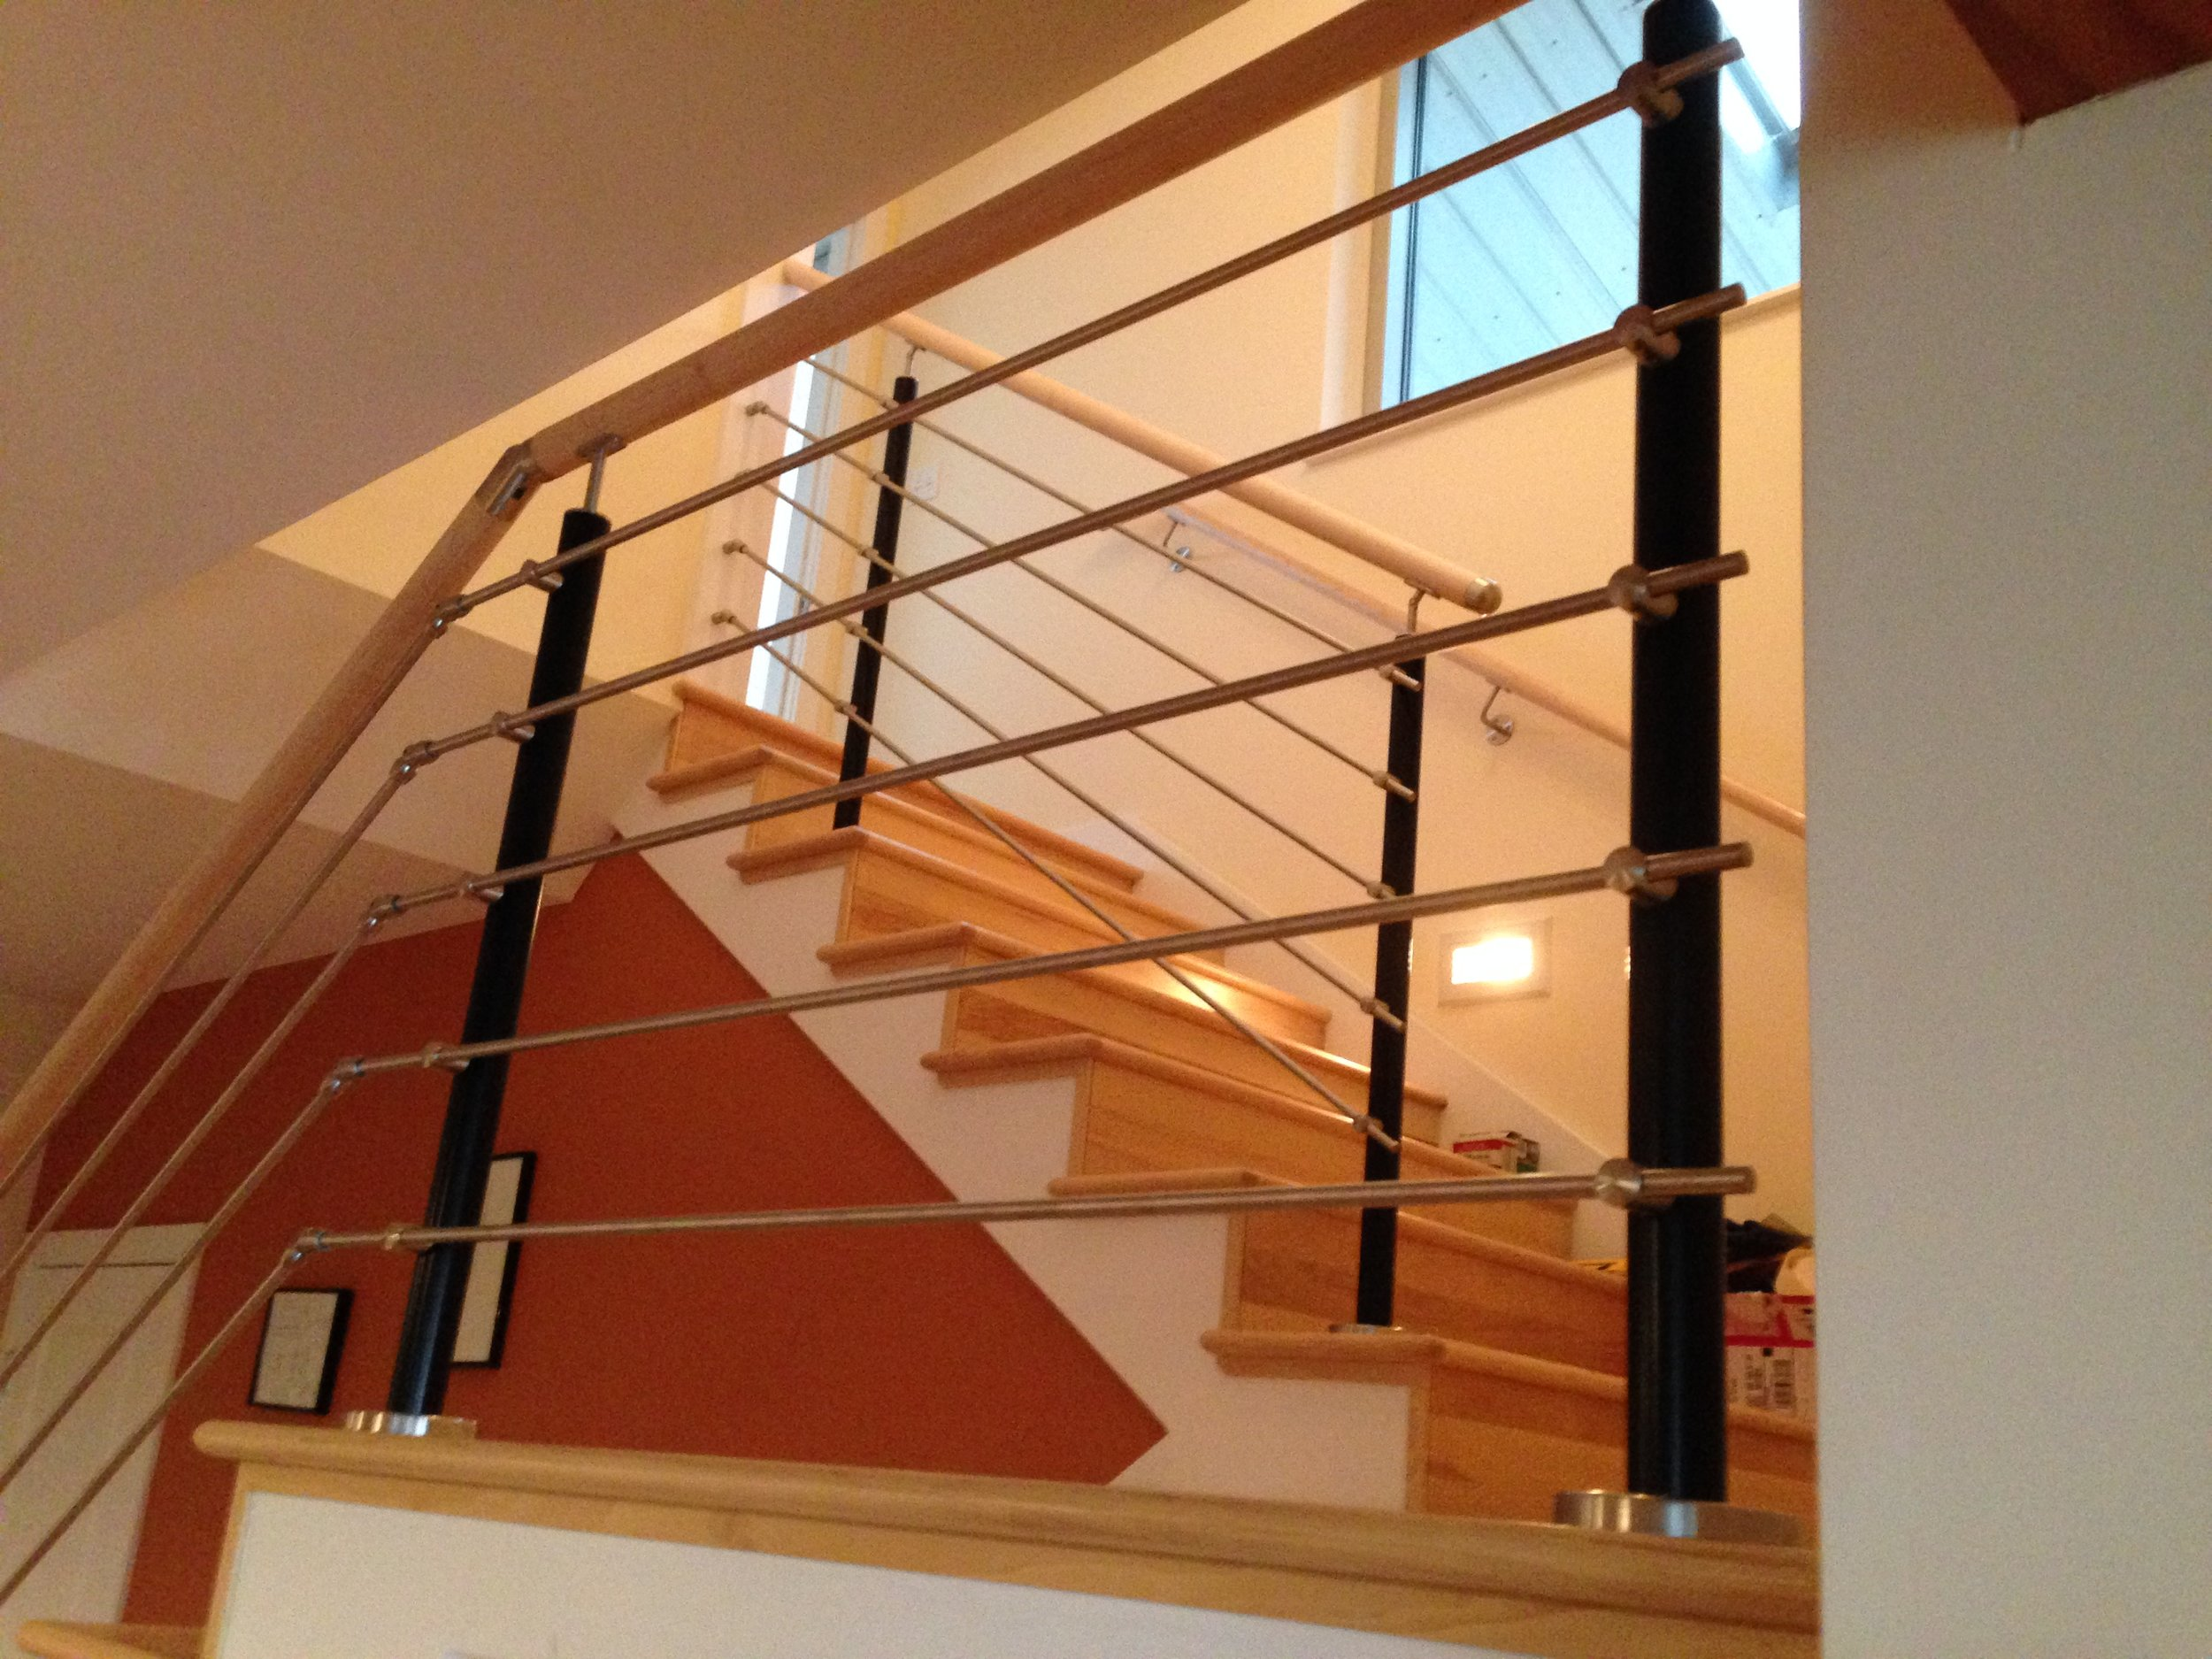 Stair with stainless railings